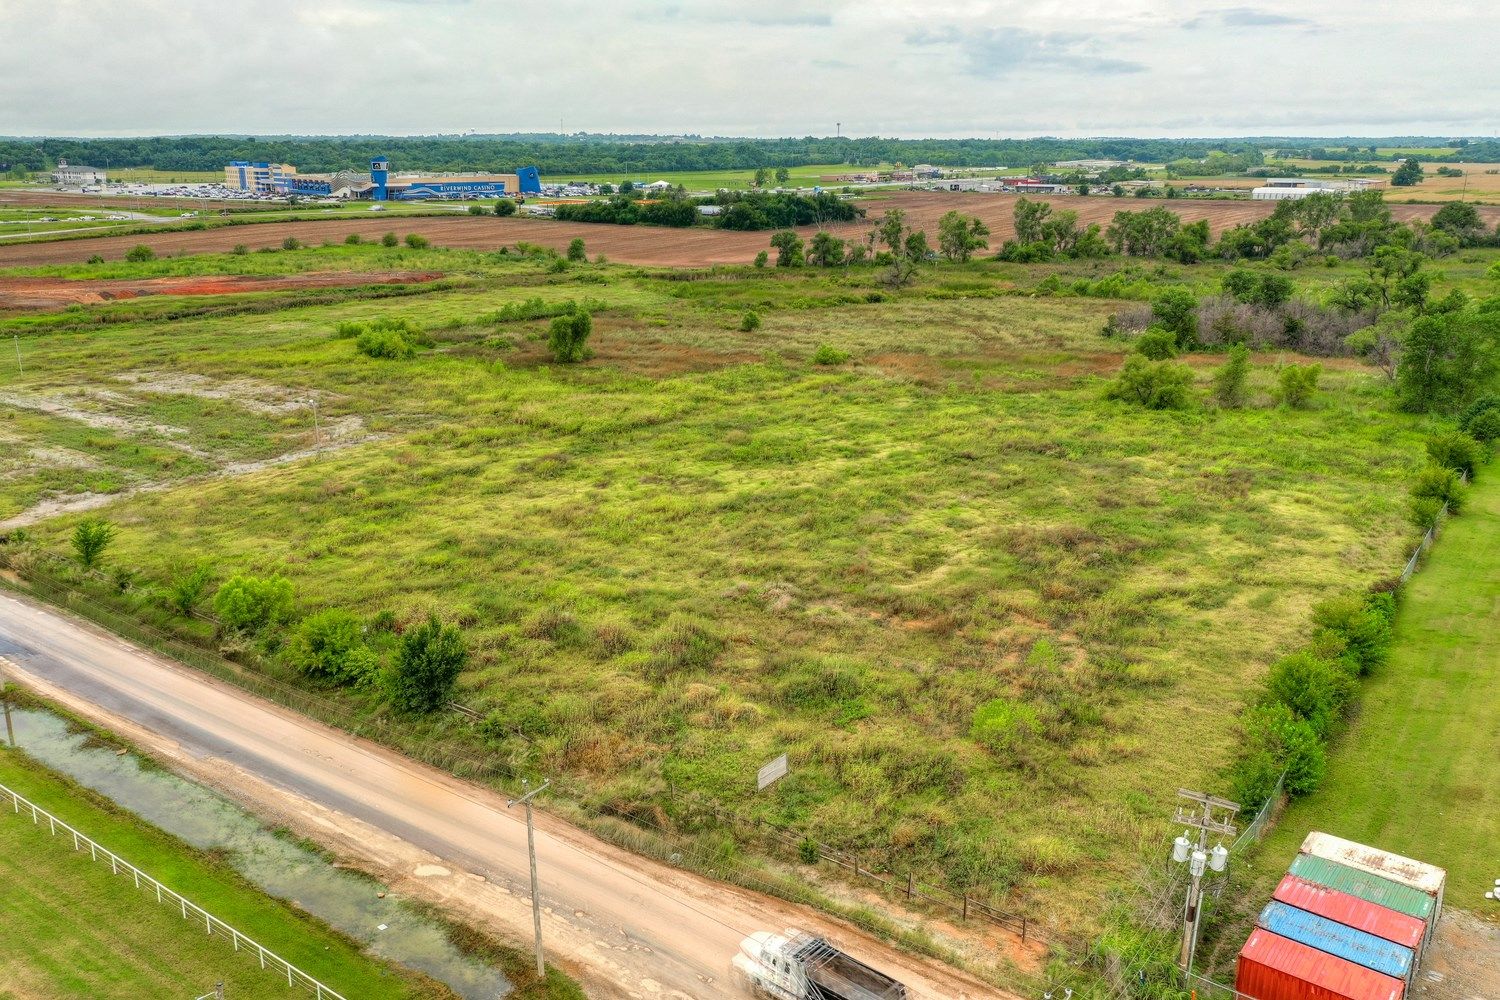 Norman, Oklahoma Commercial Land - 12 Acres